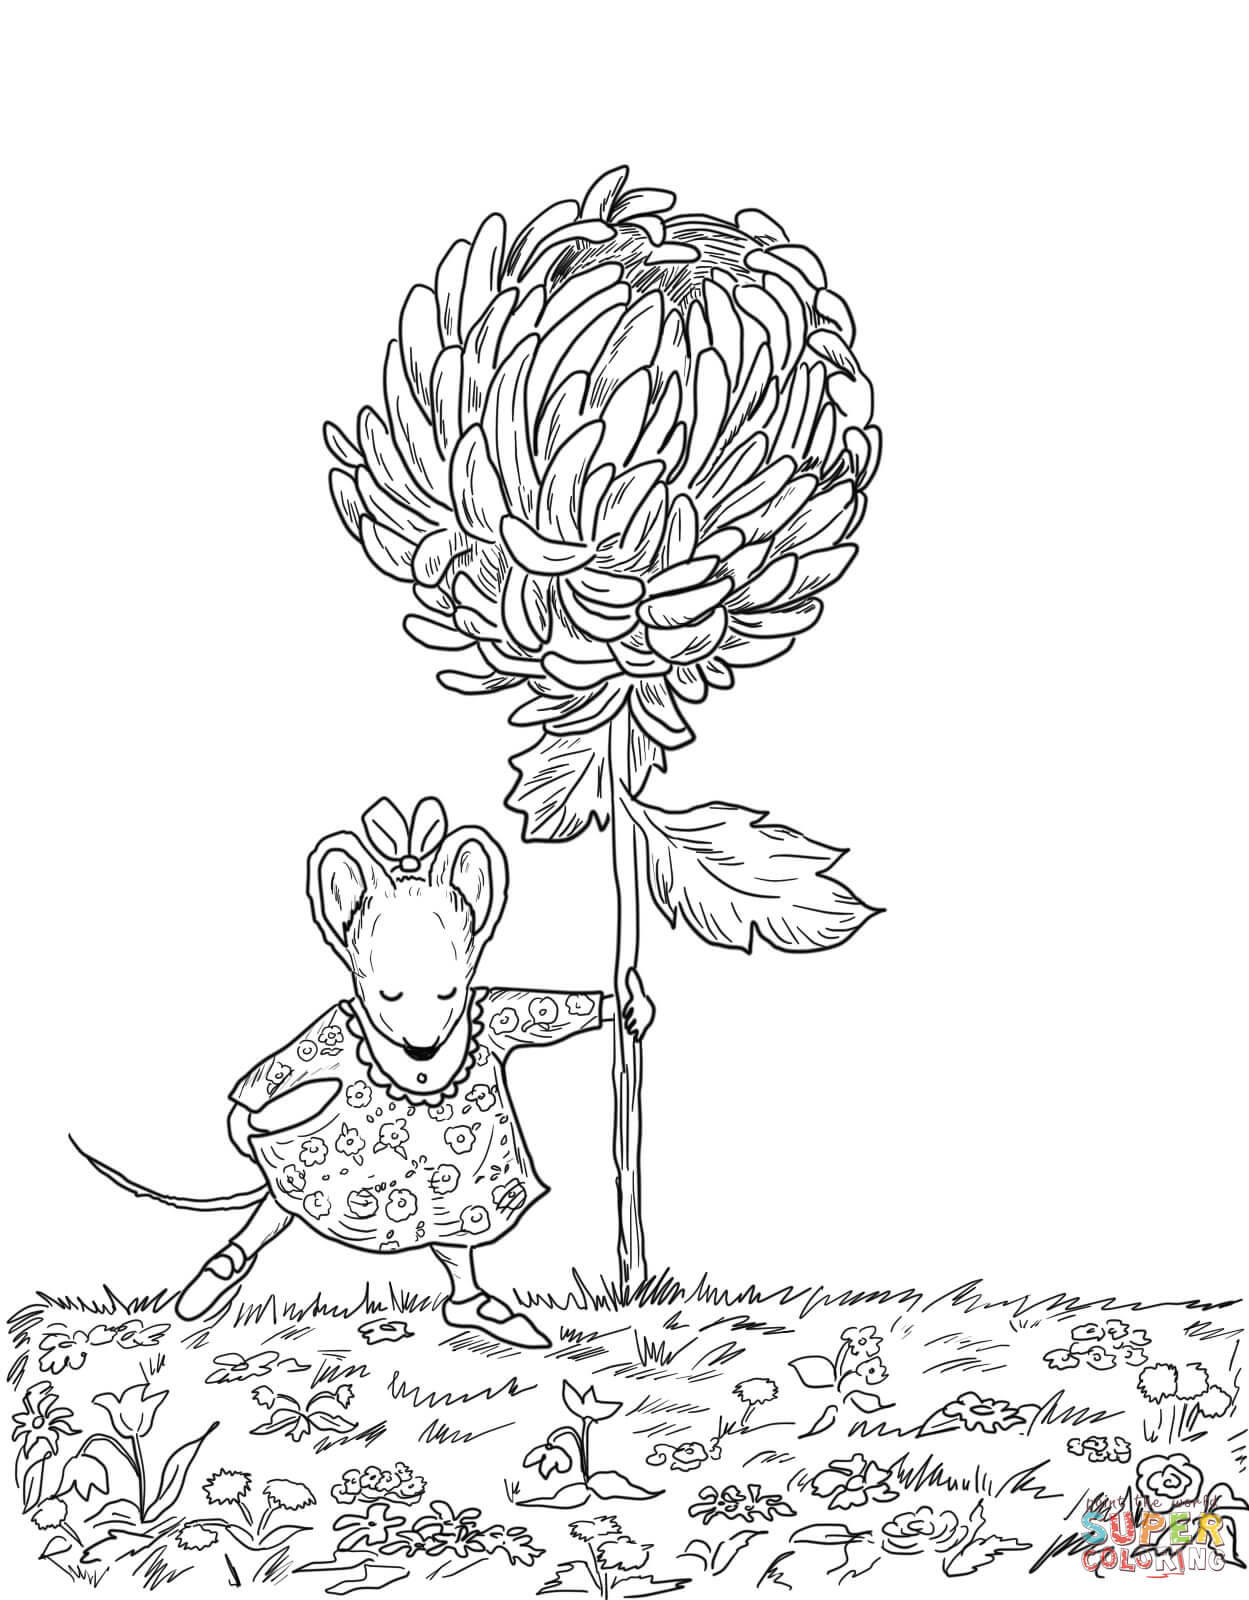 Free Kevin Henkes Coloring Pages